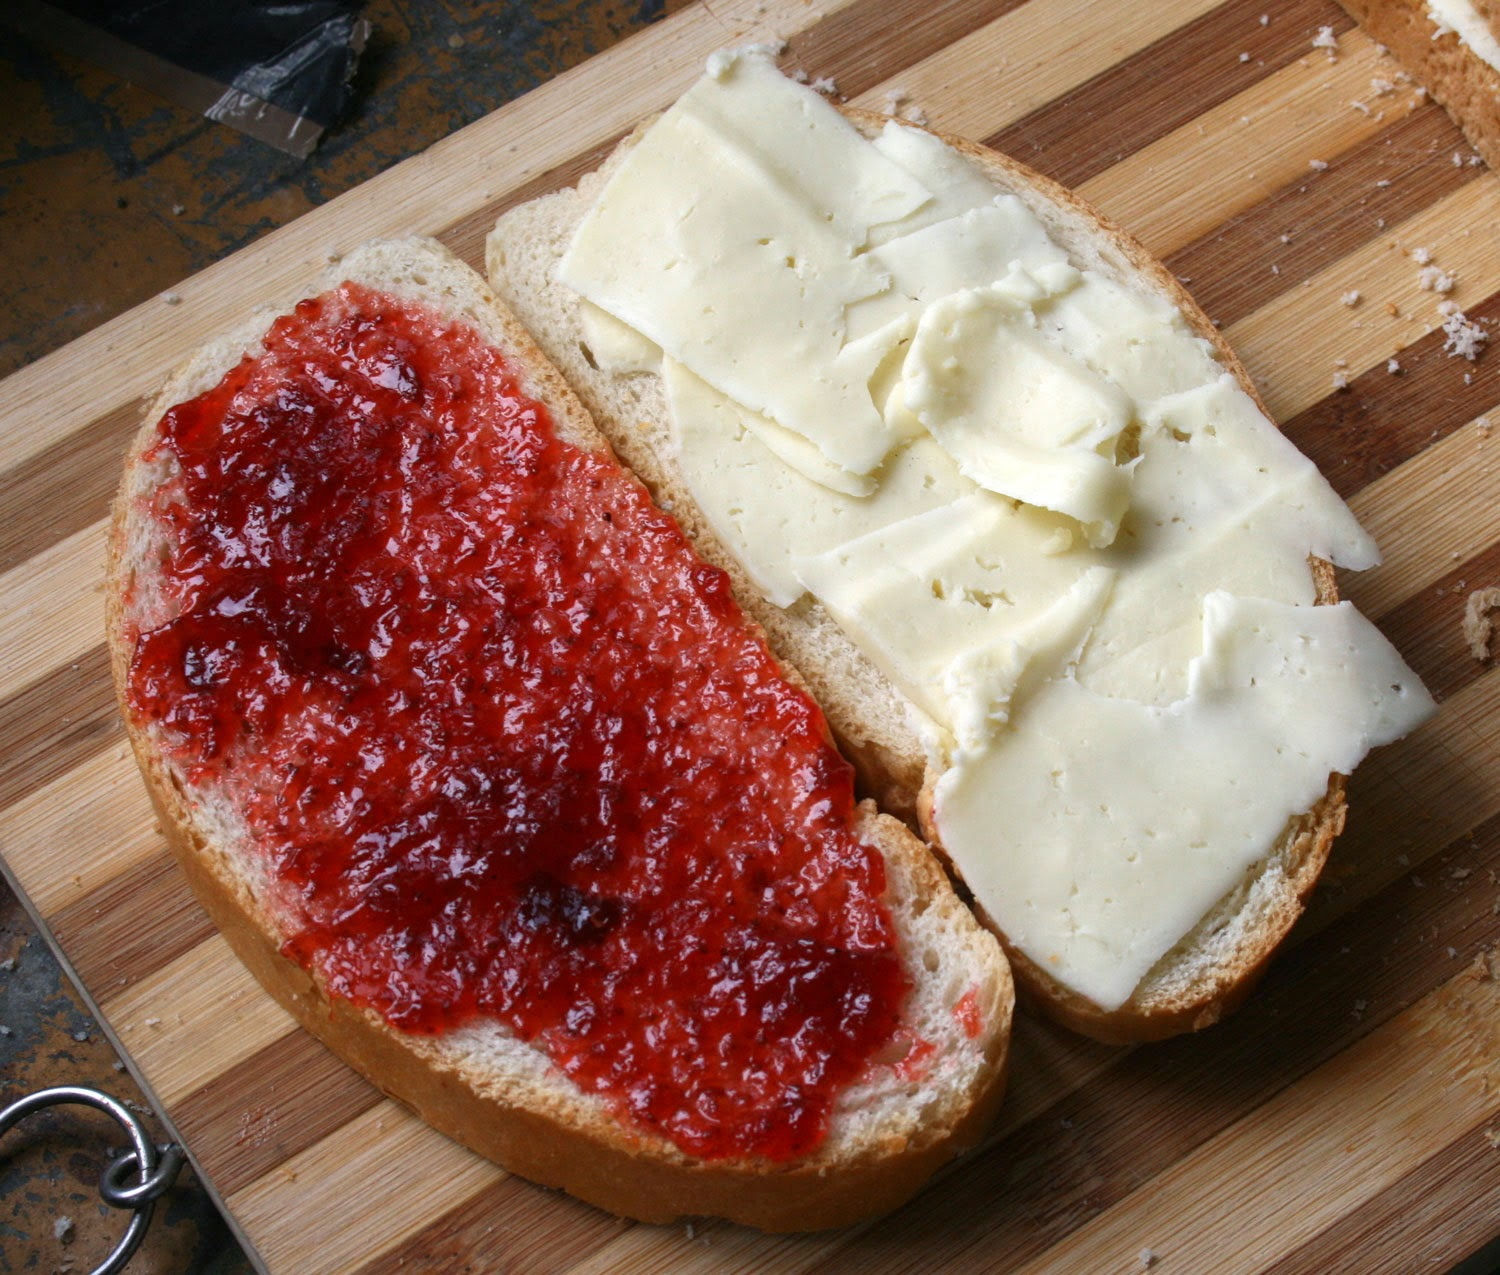 Cheese and strawberry jam sandwiches